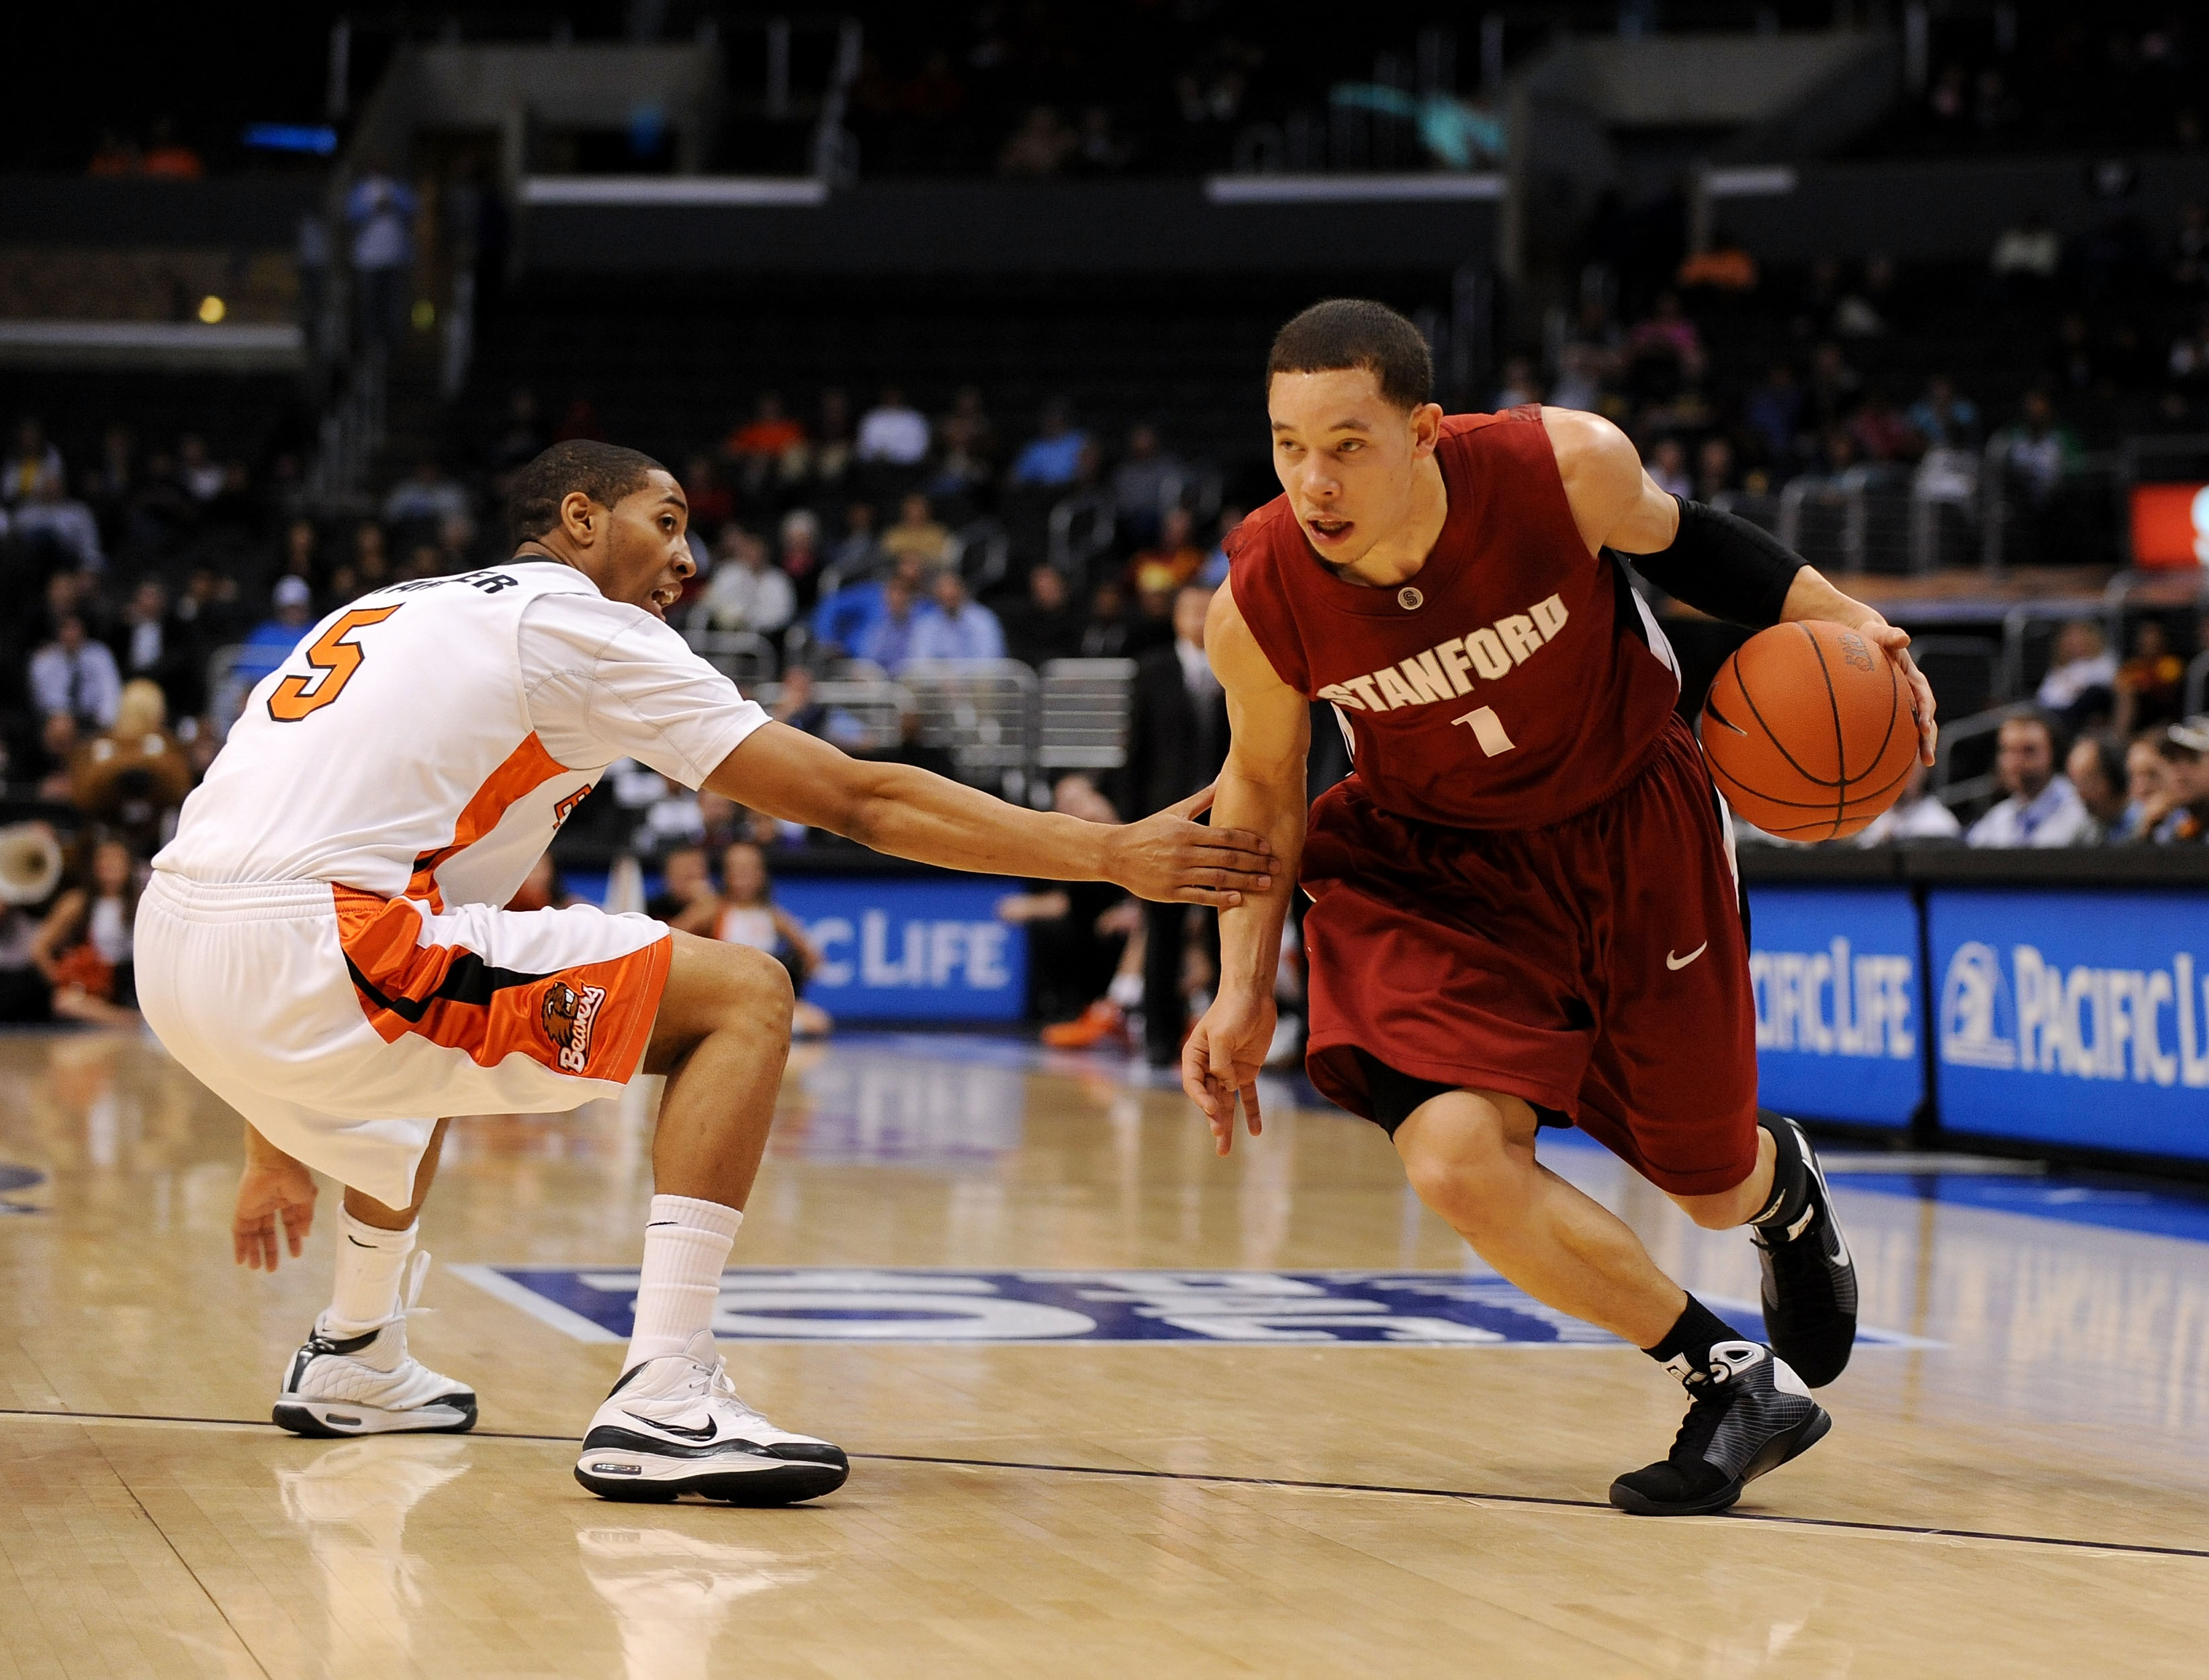 Stanford's Mitch Johnson dished out 16 assists in a 2008 overtime victory over Marquette. (Getty Images)